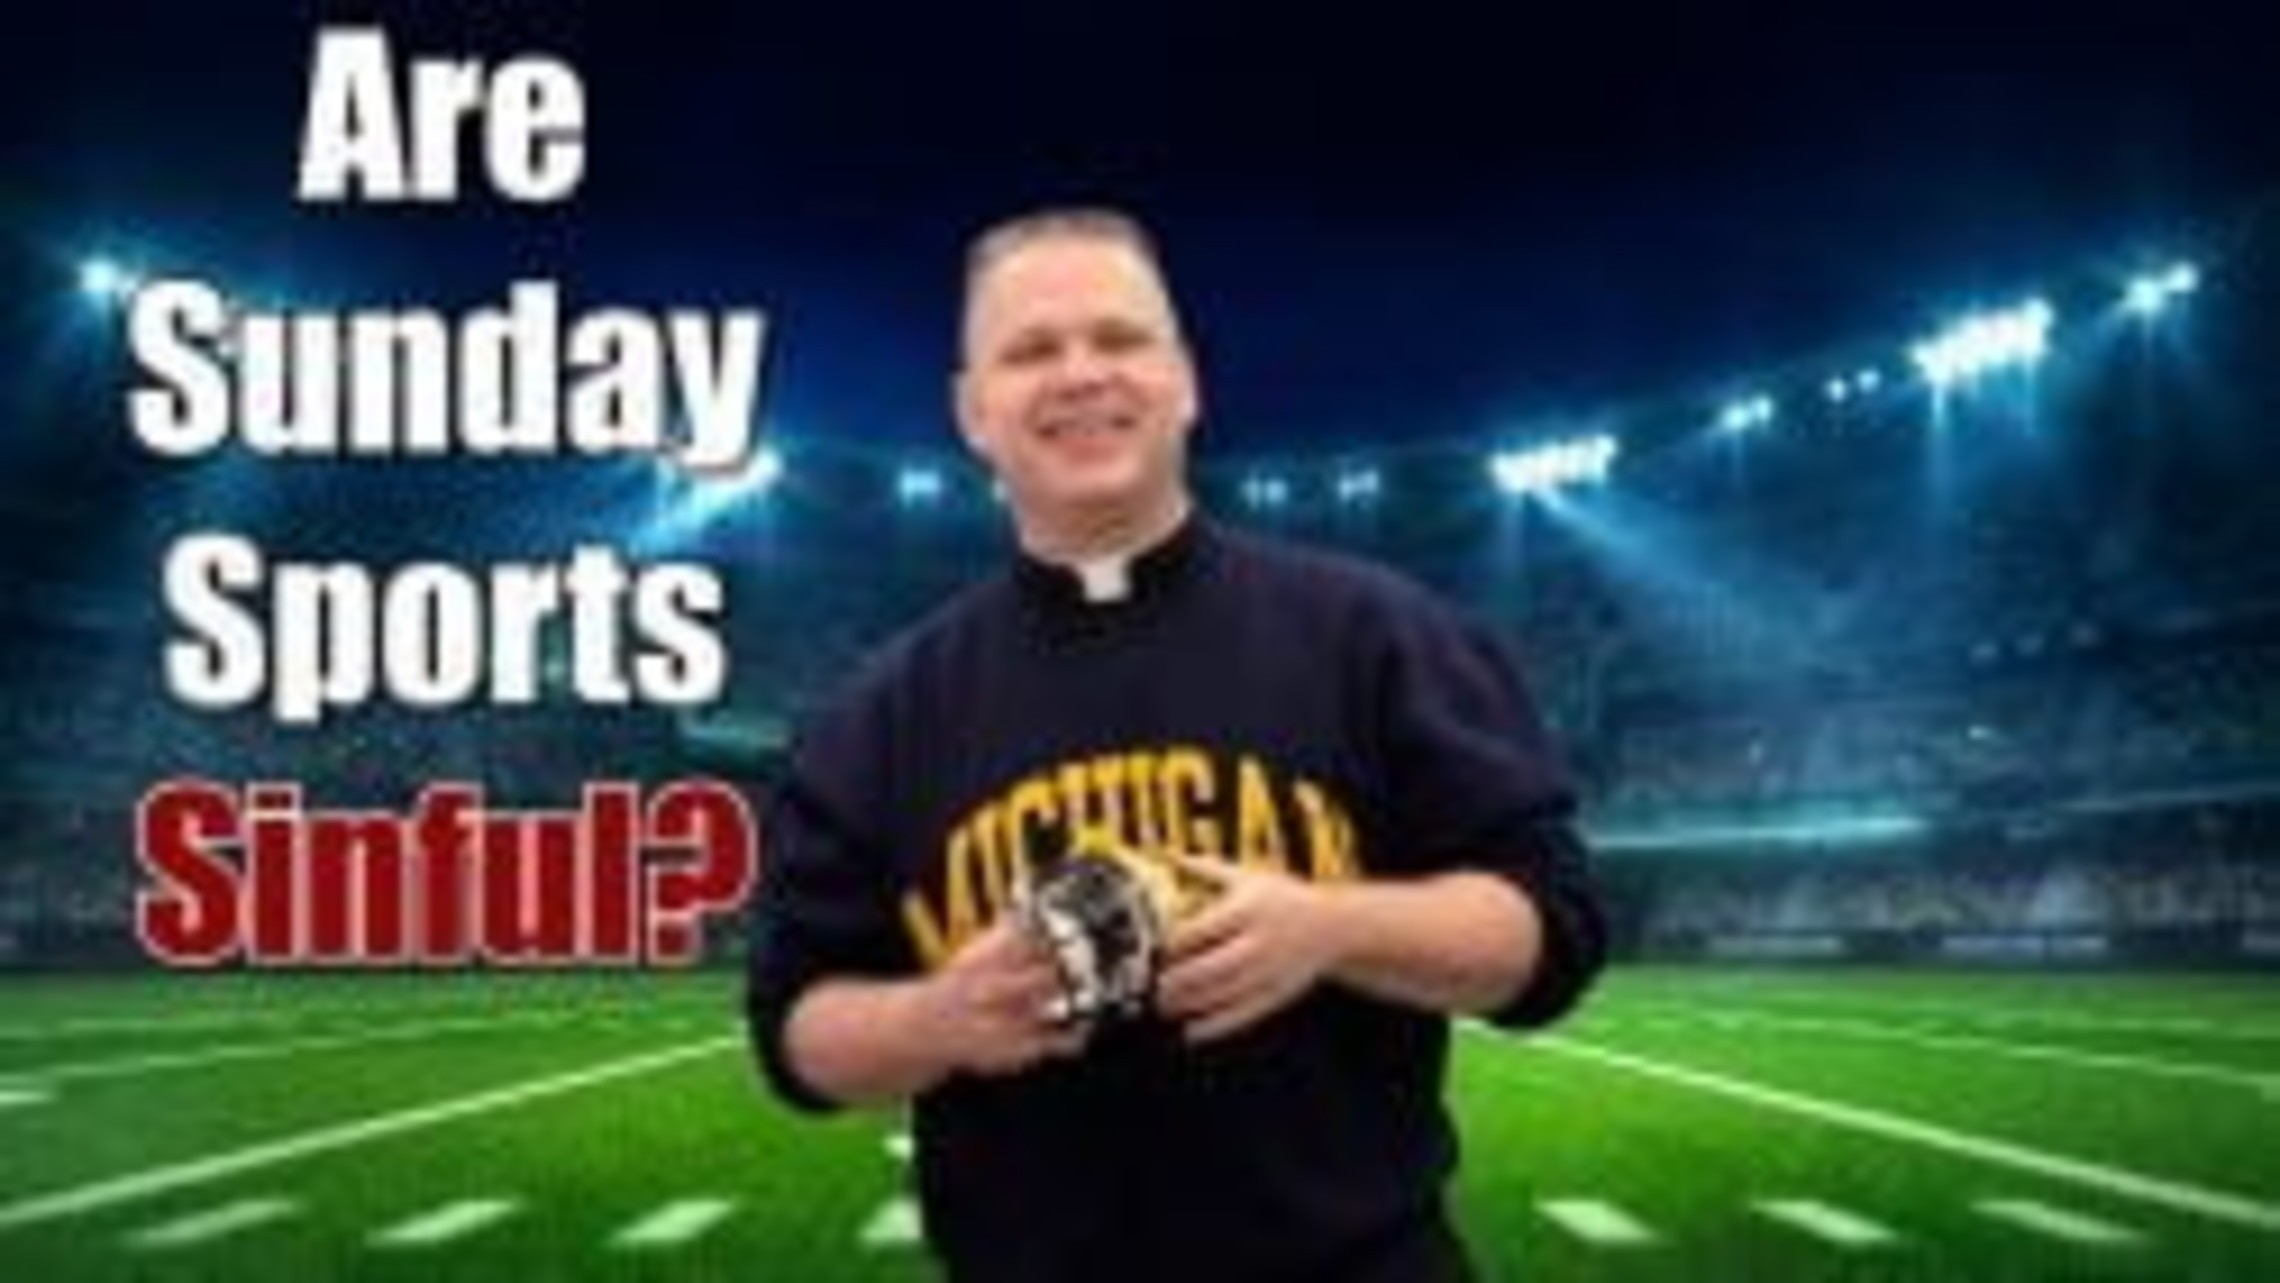 Are Sunday Sports Sinful?